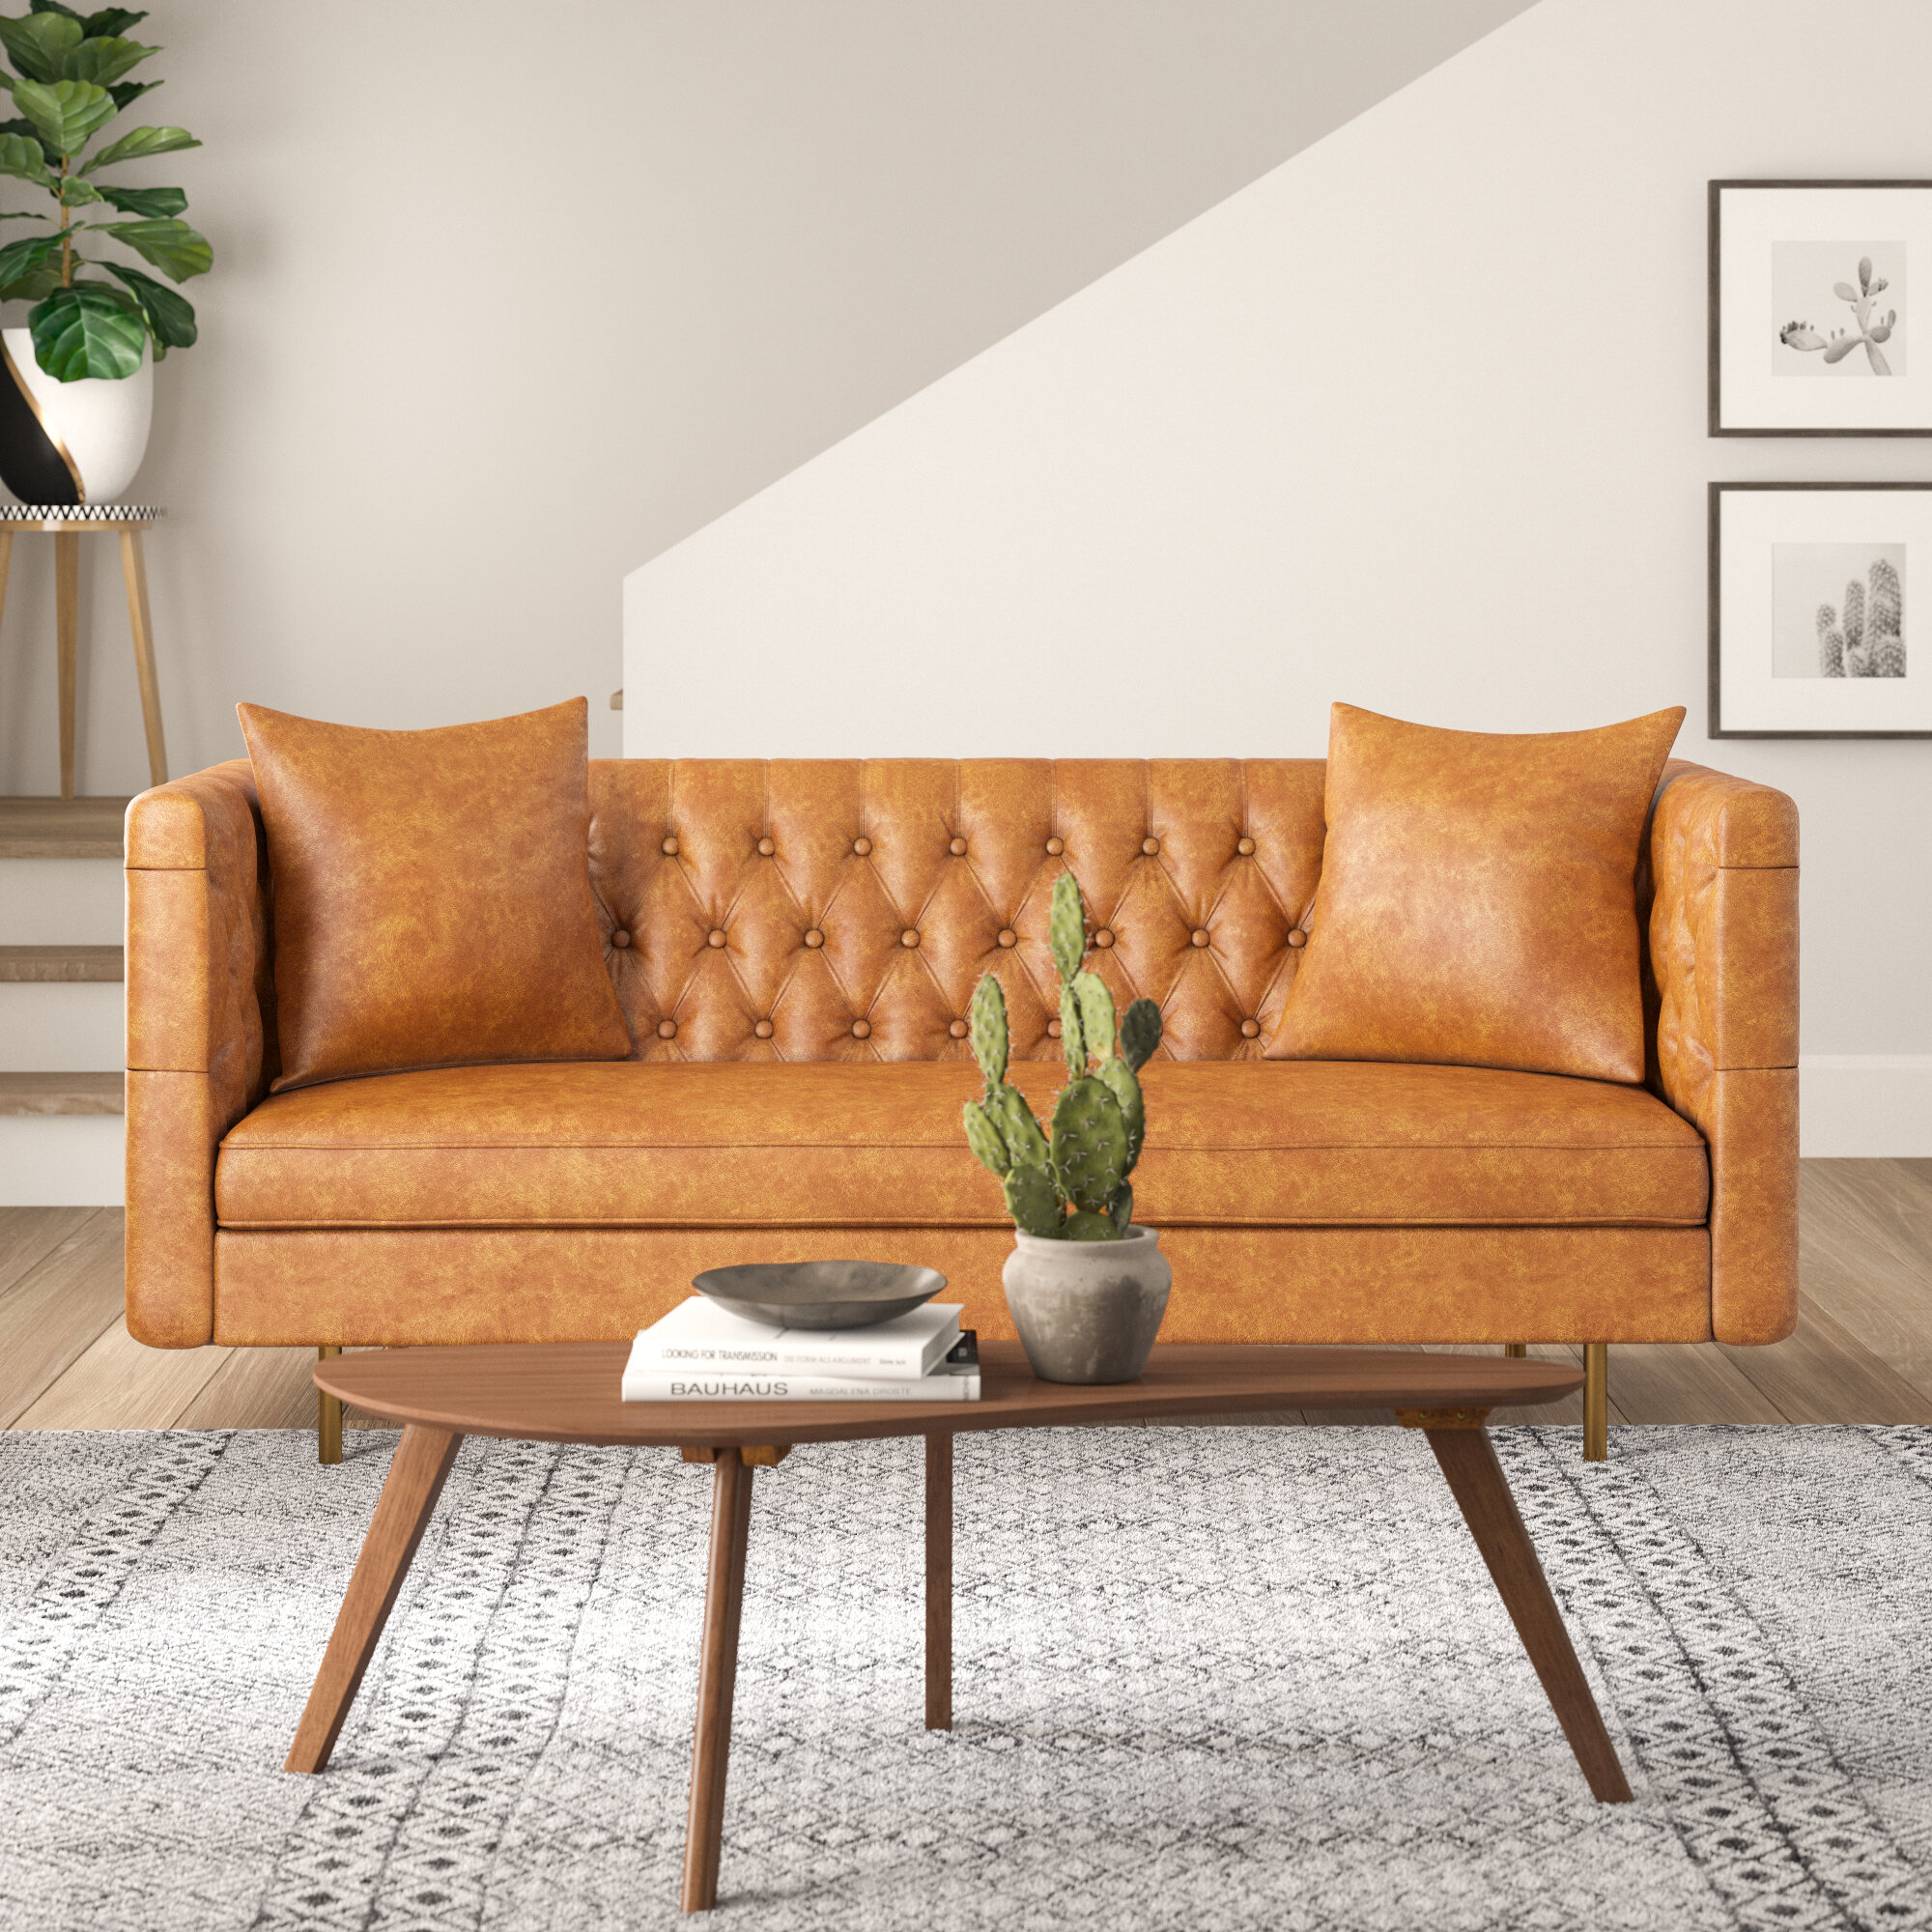 Surprising Quinton Sofa Caraccident5 Cool Chair Designs And Ideas Caraccident5Info